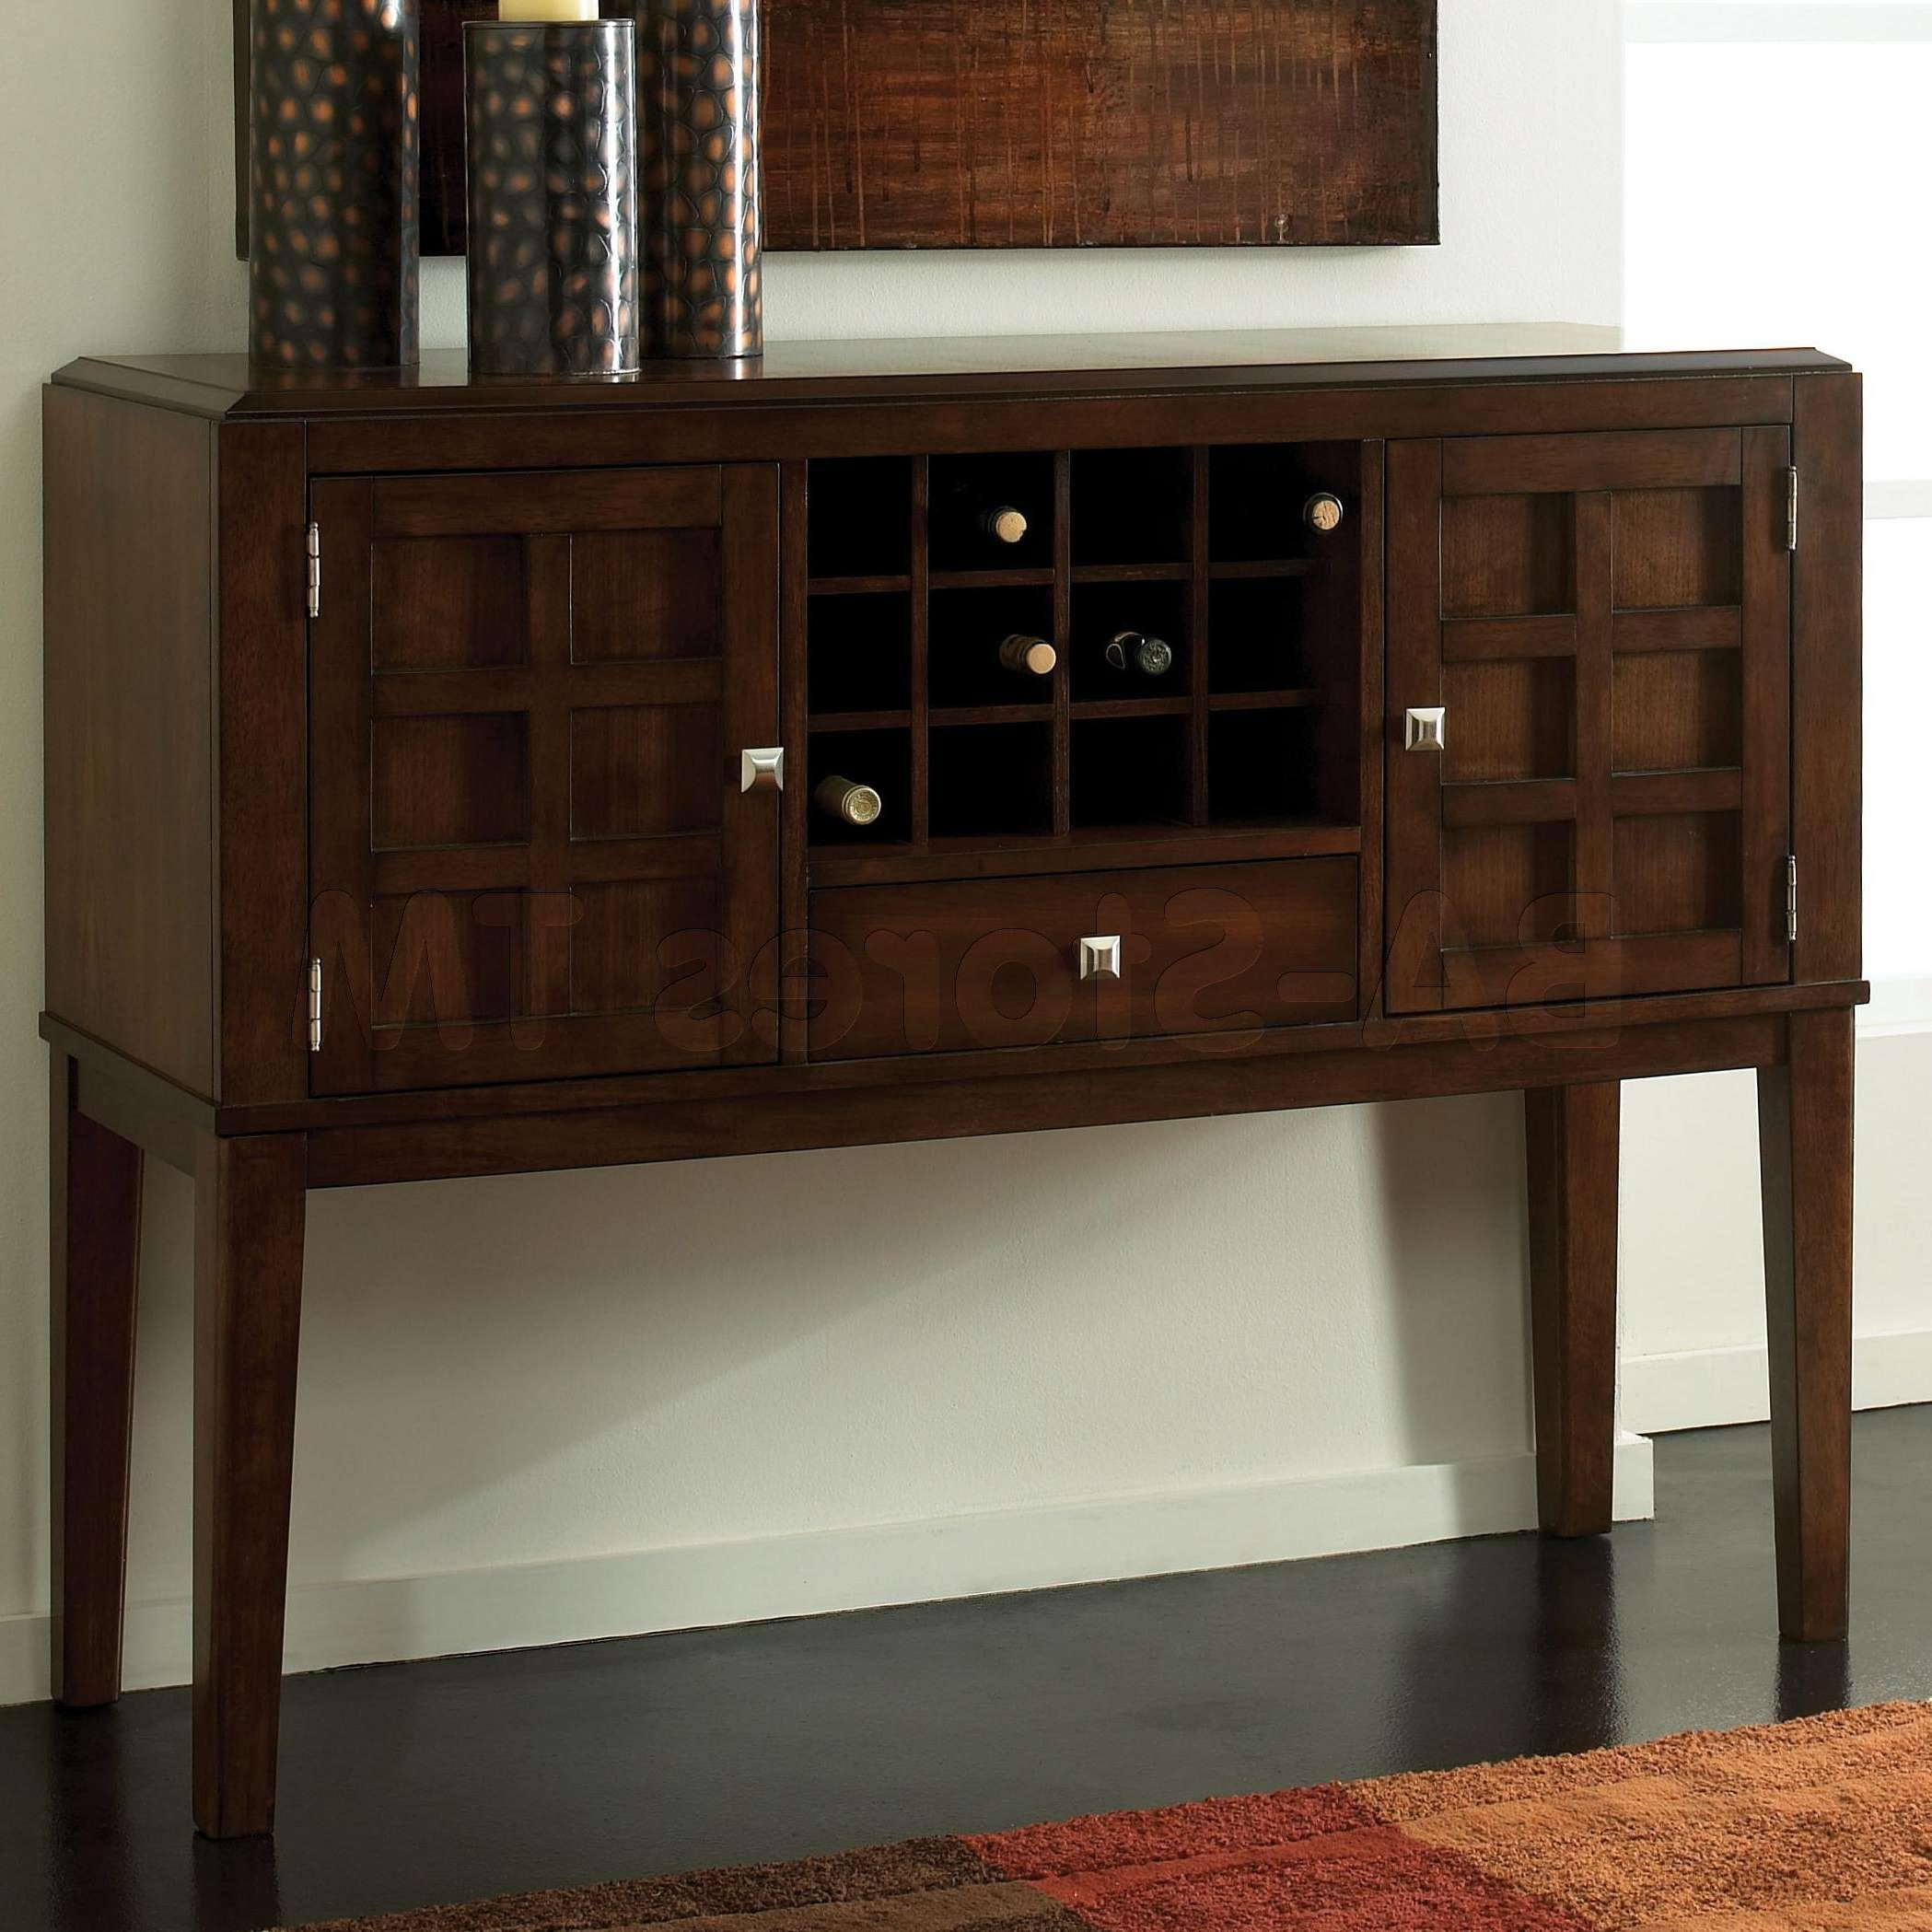 Unique Dining Room Buffets Sideboards – Bjdgjy For Dining Room With Sideboards (View 12 of 20)